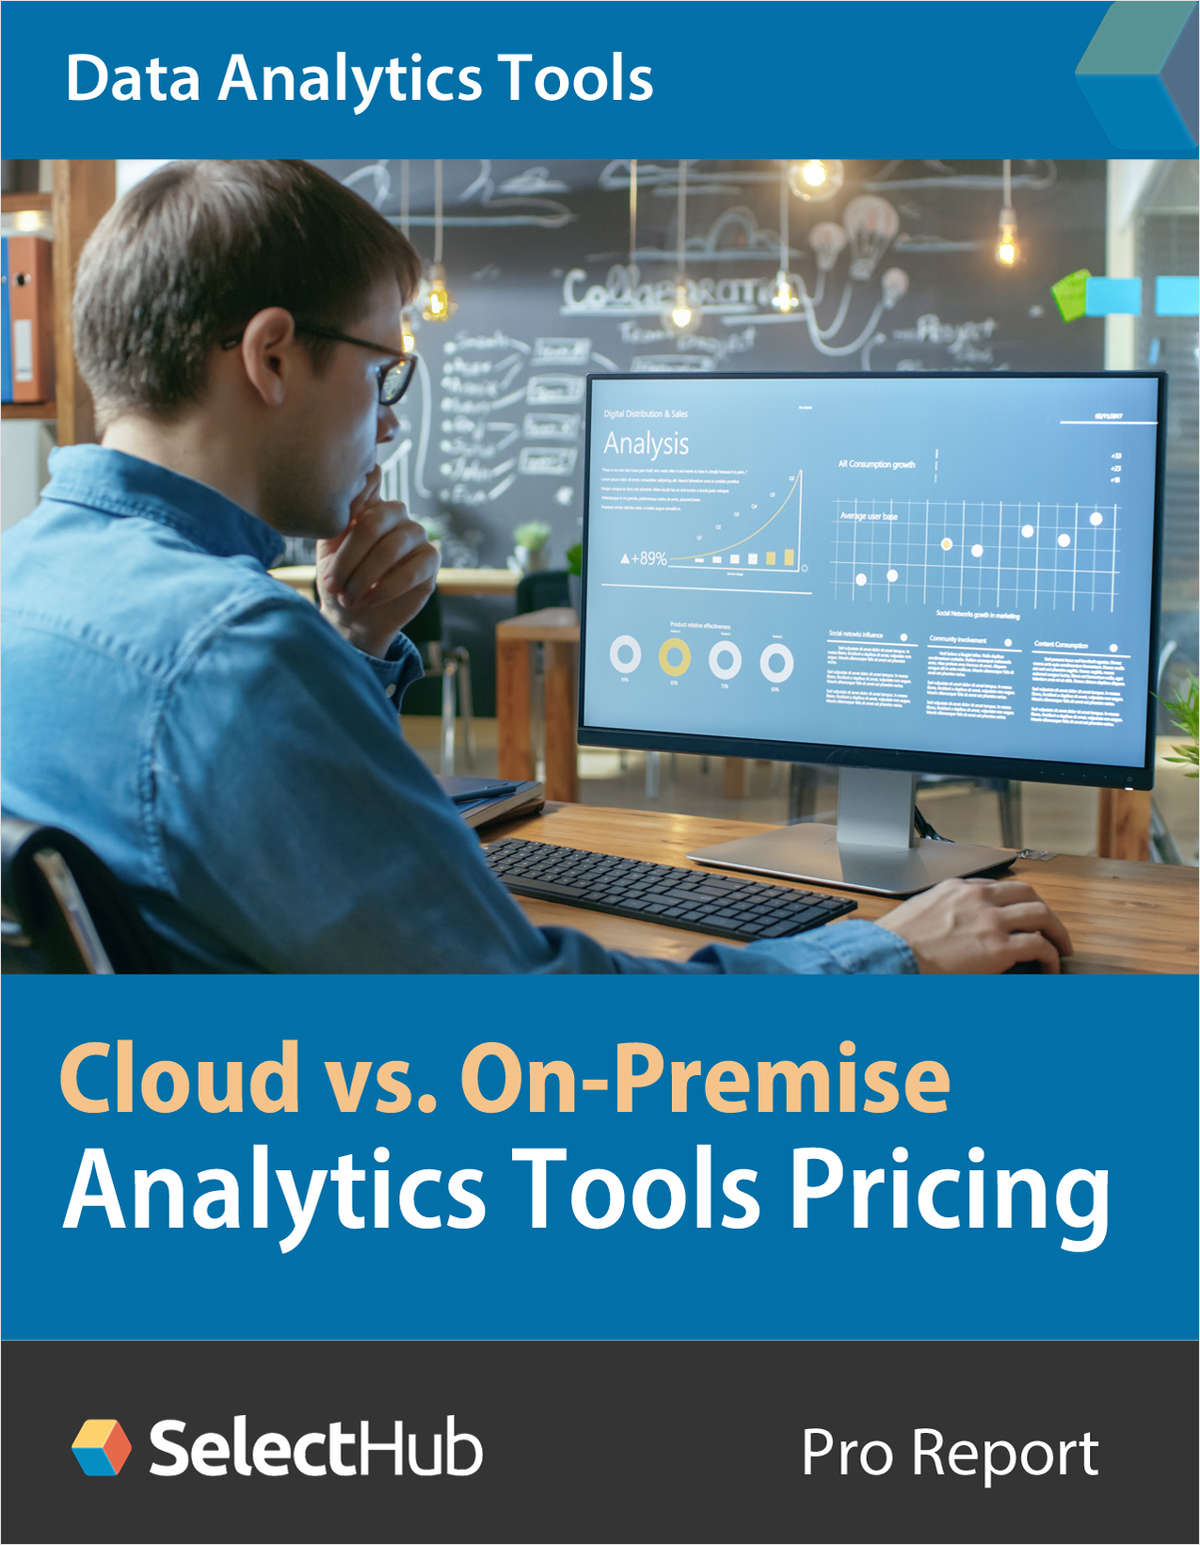 Data Analytics Tools Features & Pricing--Cloud vs. On-Premise